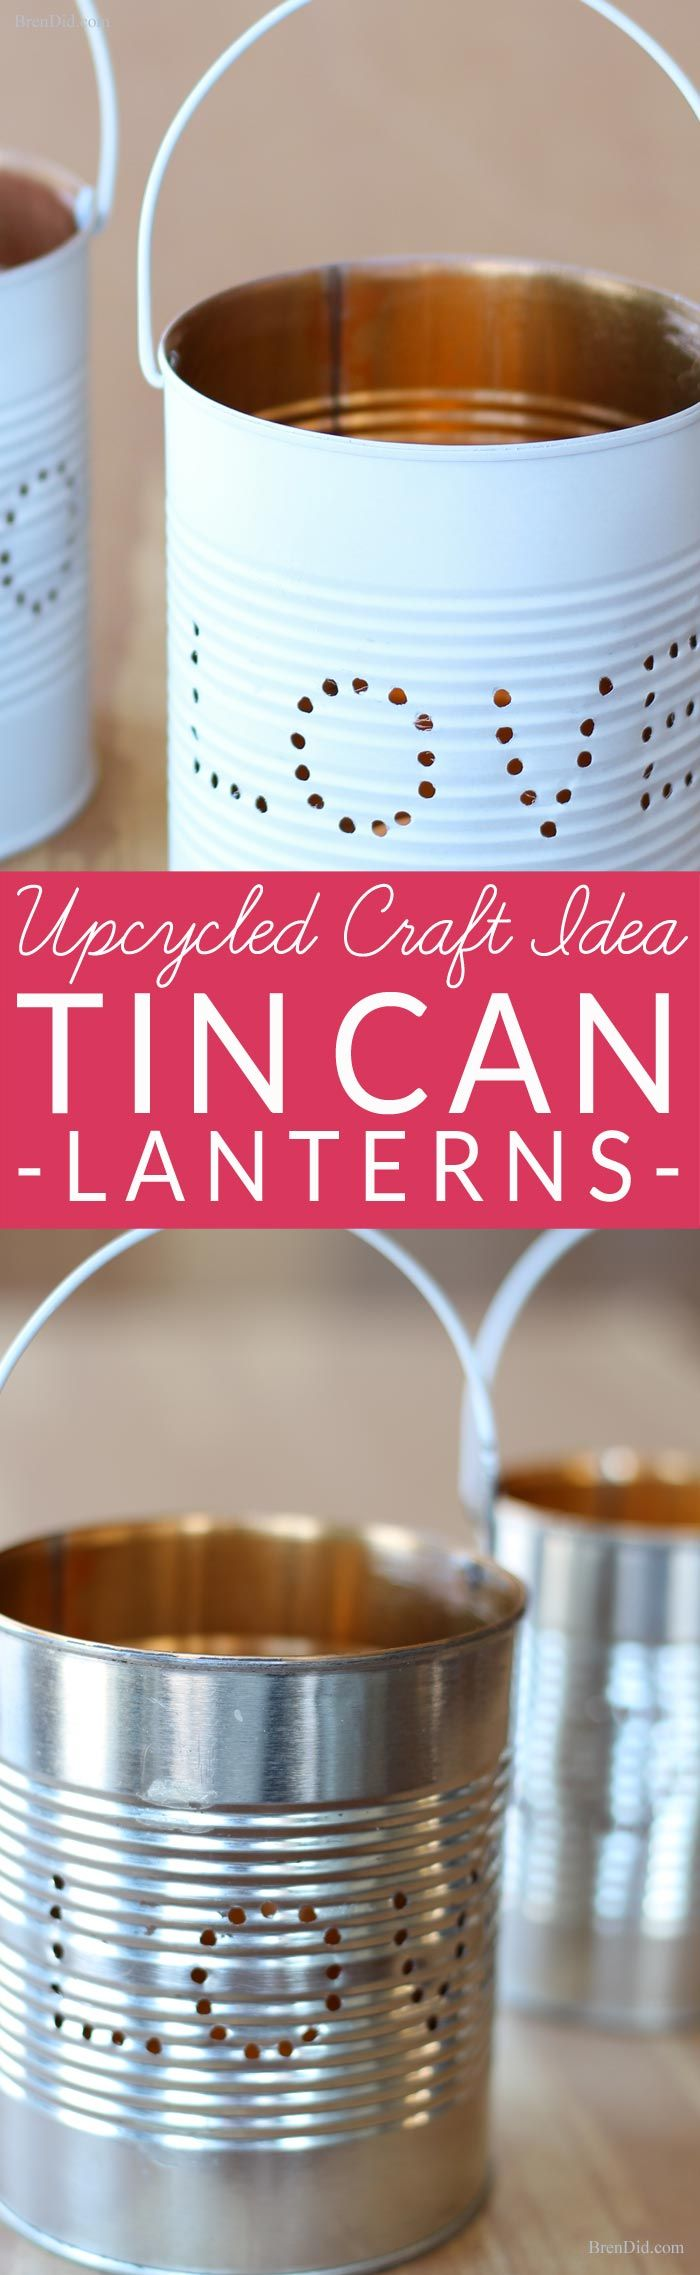 Upcycled Craft Ideas for Valentines Day. Learn how to make an adorable tin lante...